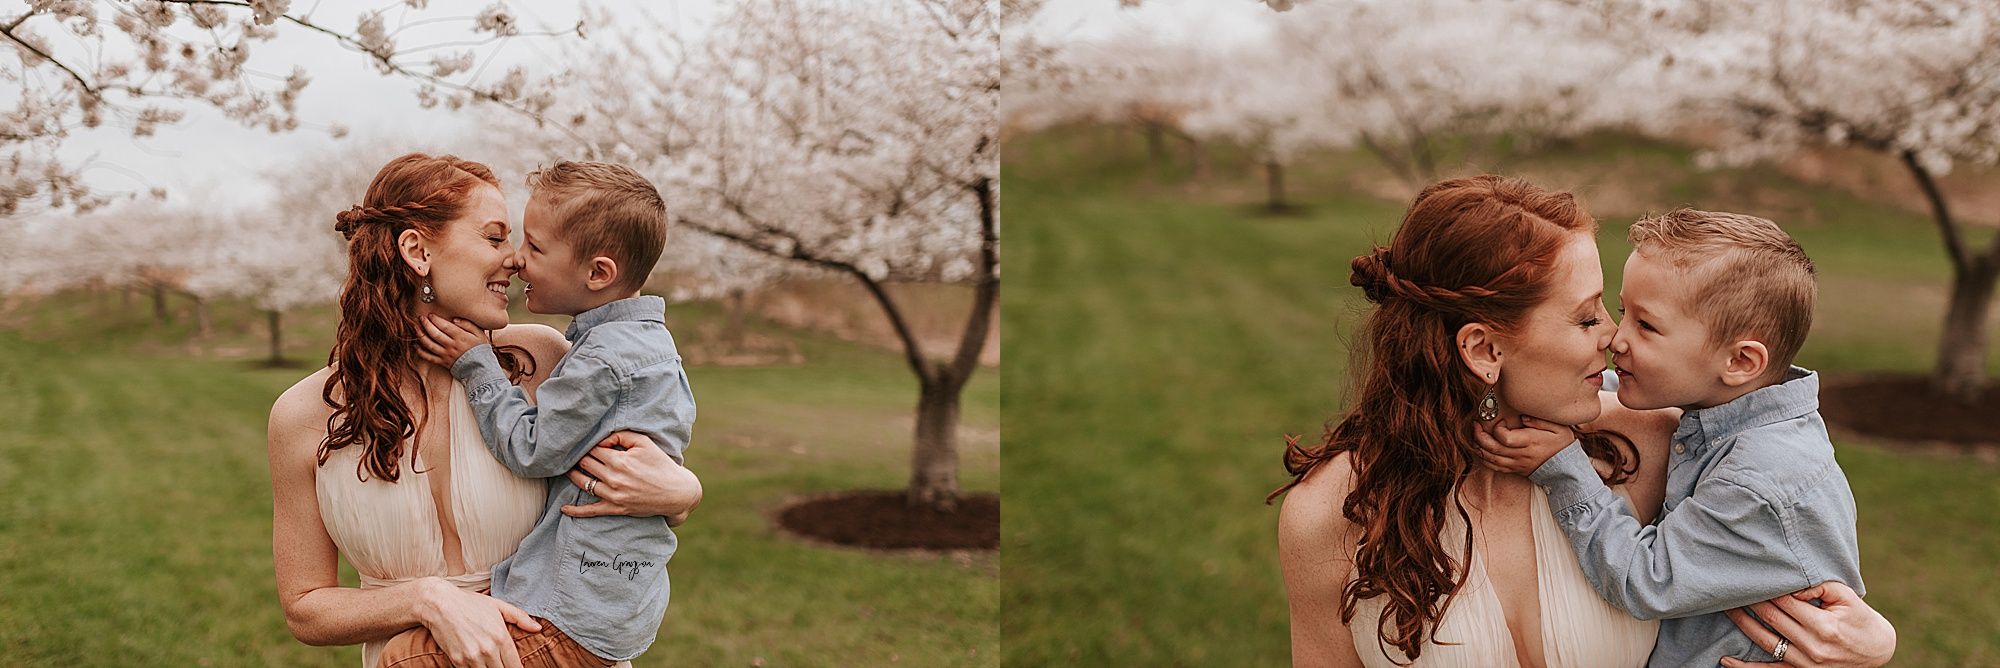 lauren-grayson-photography-cleveland-ohio-motherhood-family-child-photo-session-cherry-blossoms_0002.jpg